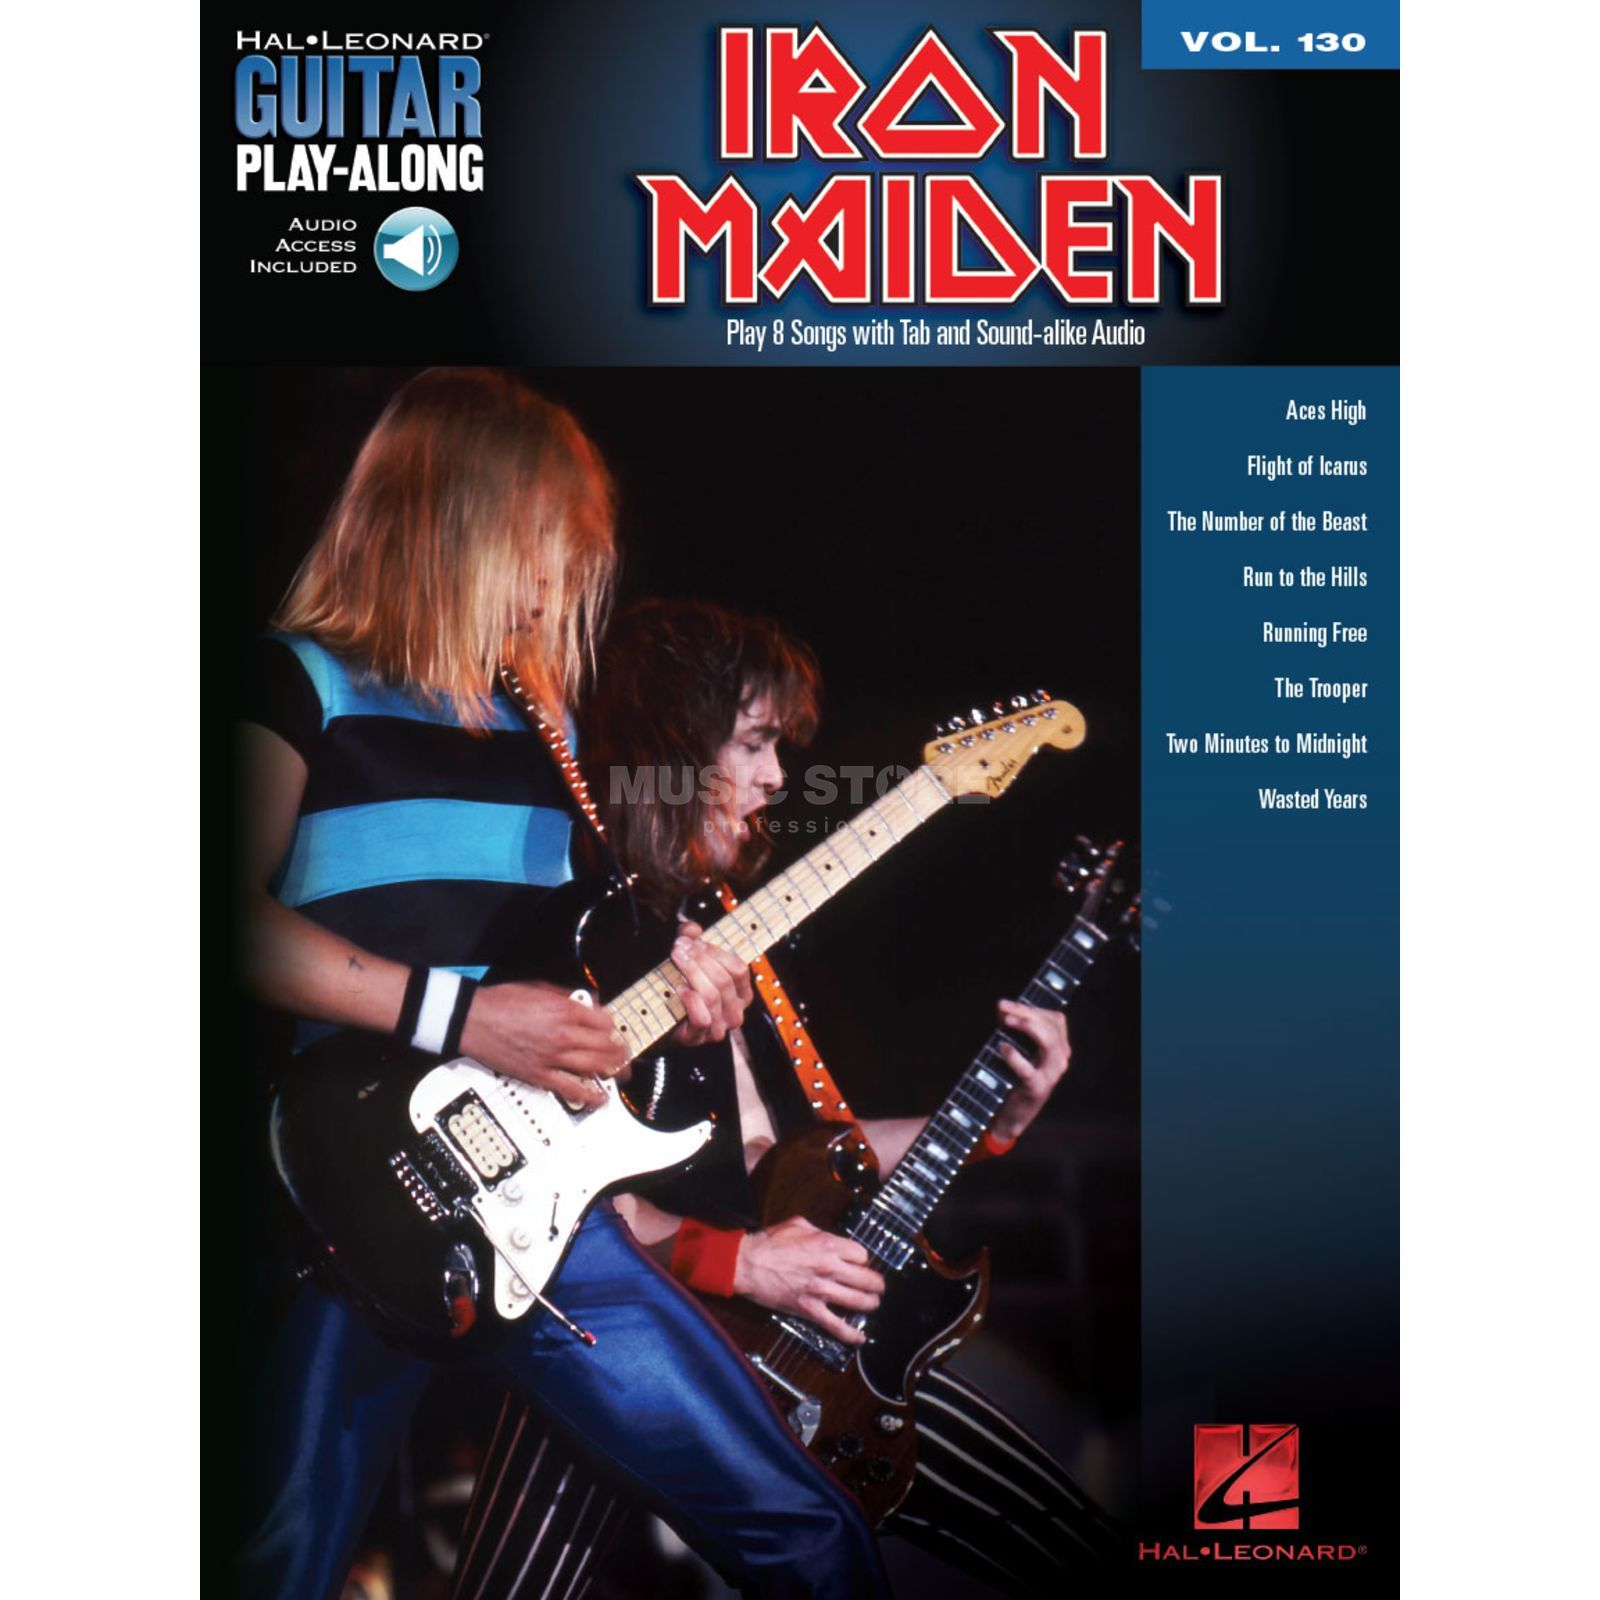 Hal Leonard Guitar Play-Along Volume 130: Iron Maiden Produktbild